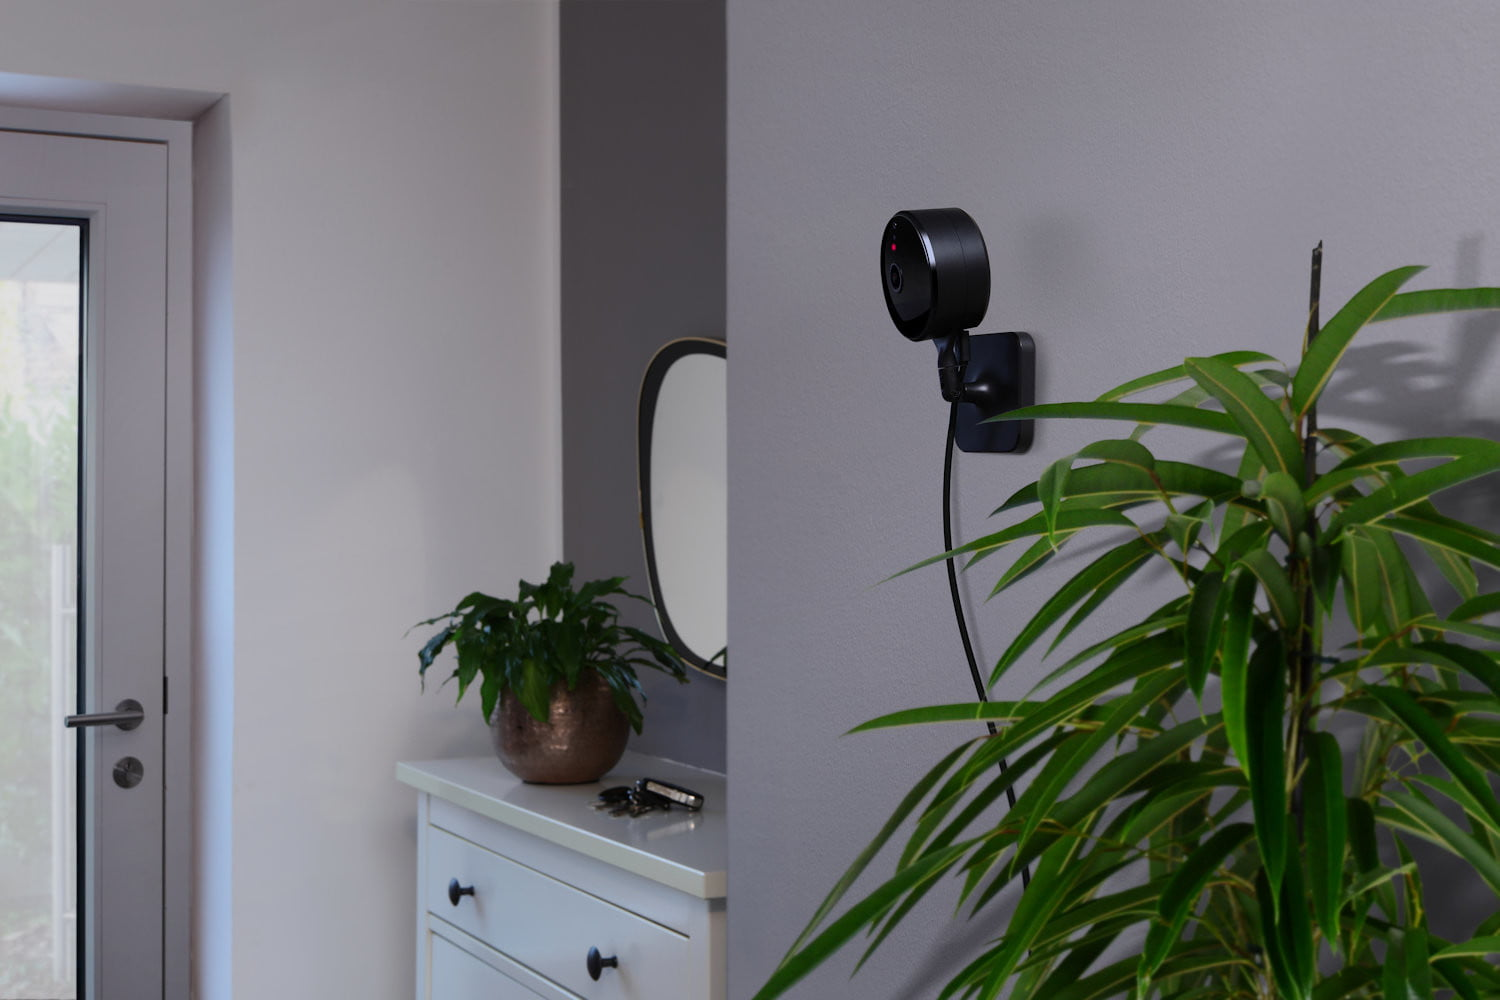 Eve Cam is a HomeKit indoor security camera that saves your recordings in iCloud